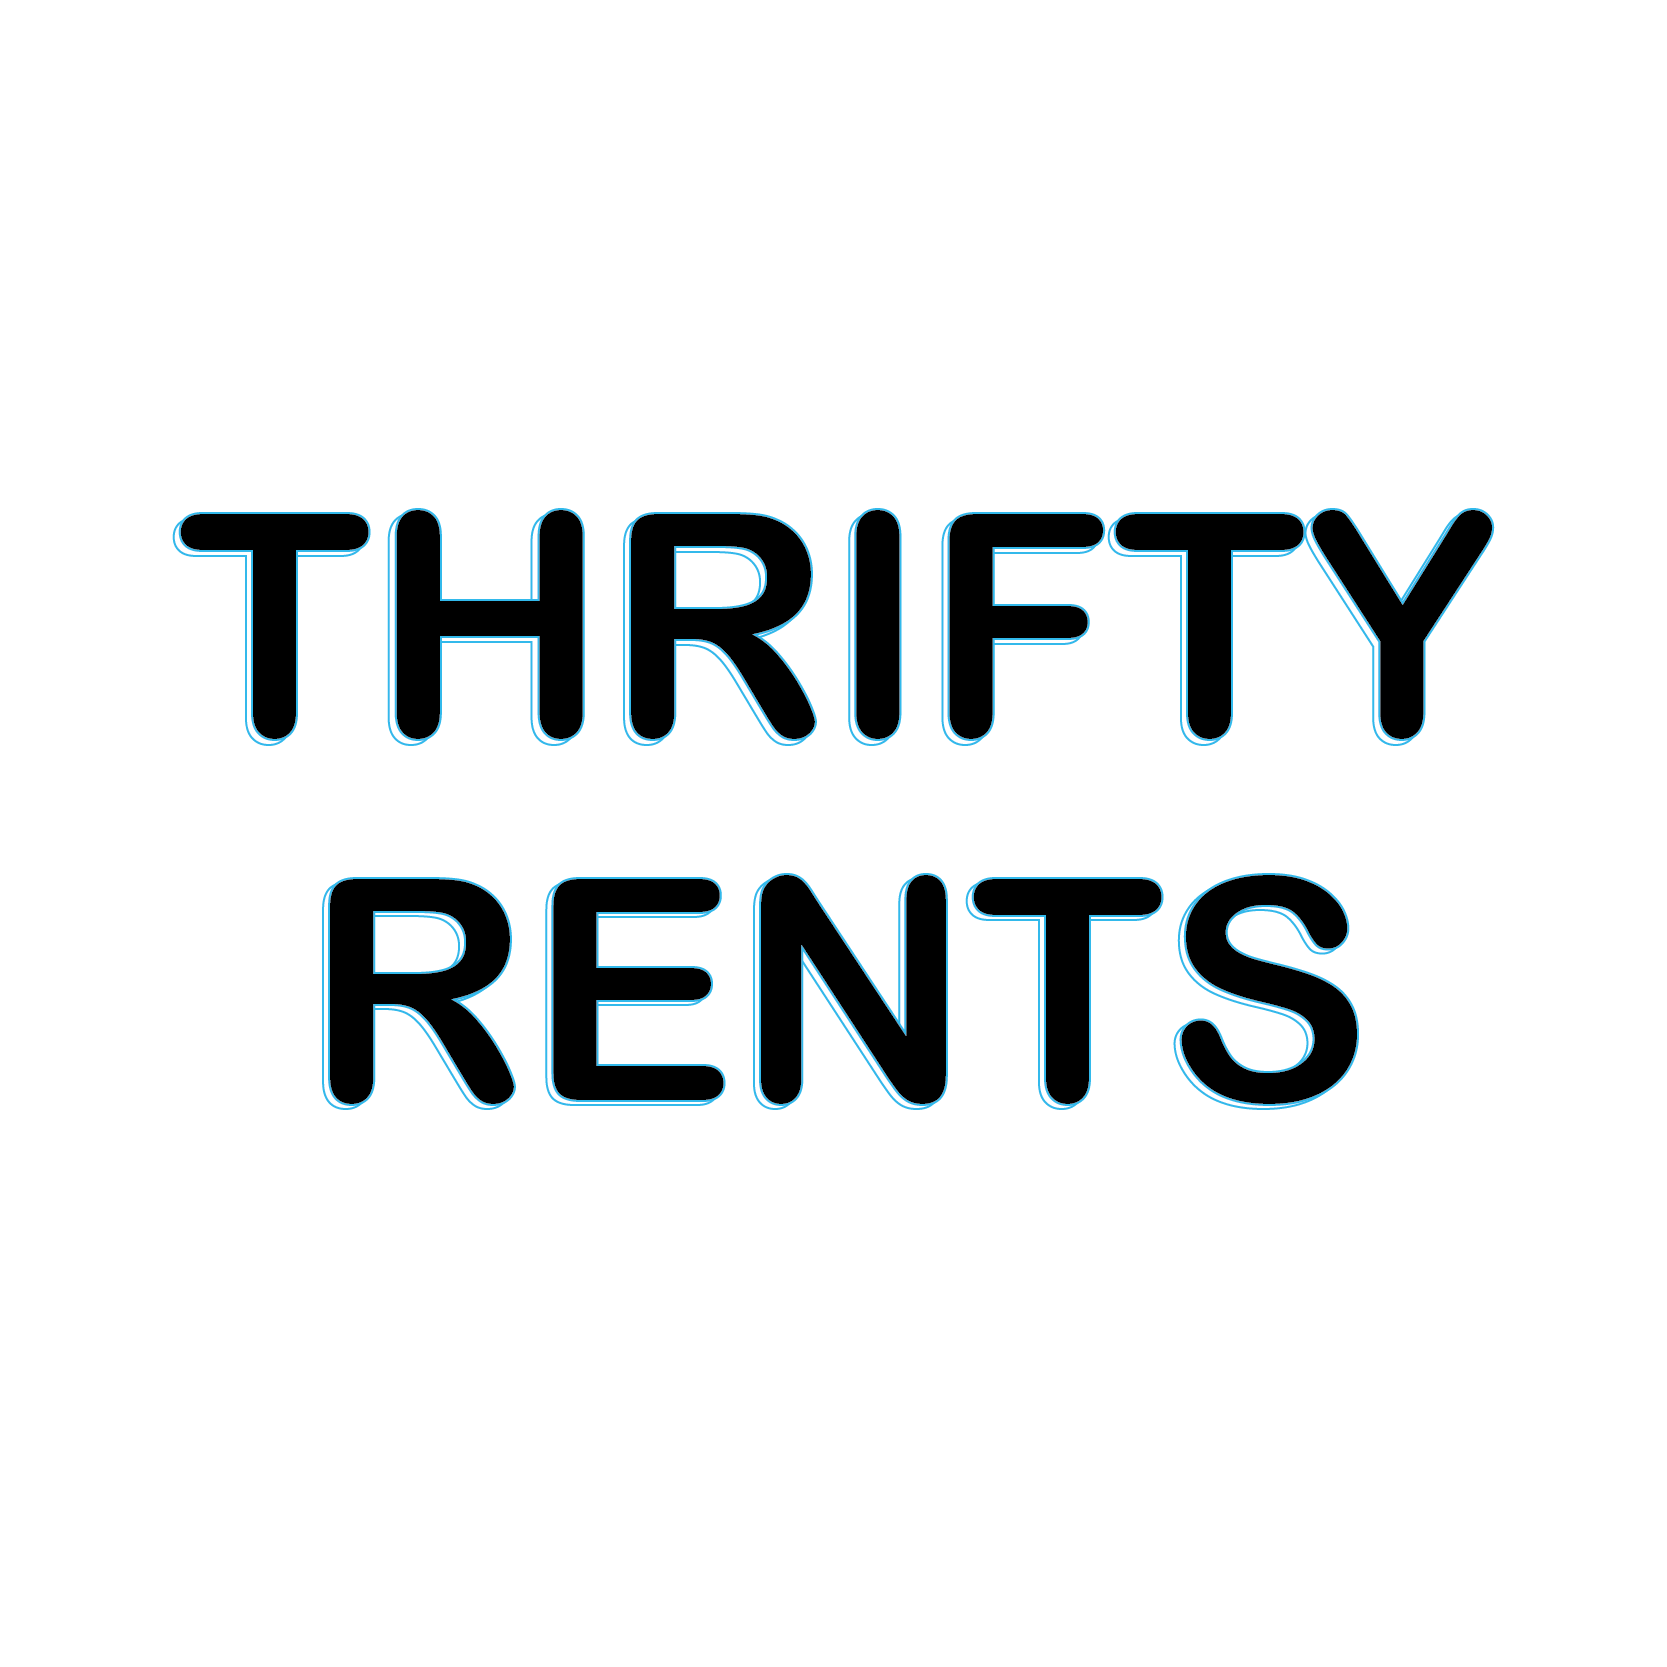 Small Business - Thrifty Rents Costume Rentals